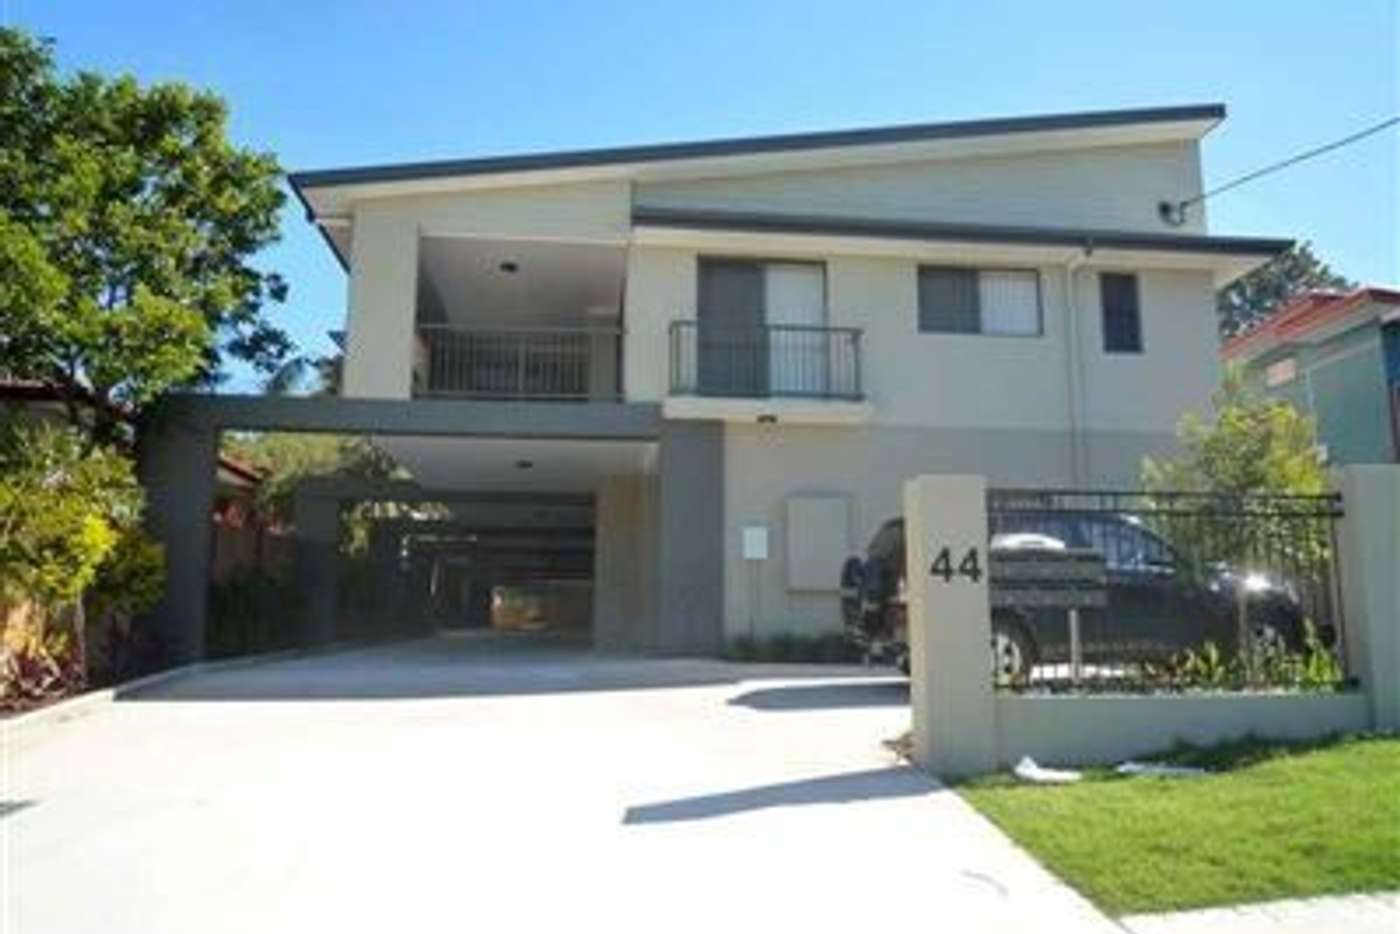 Main view of Homely apartment listing, 6/44 Church Road, Zillmere QLD 4034